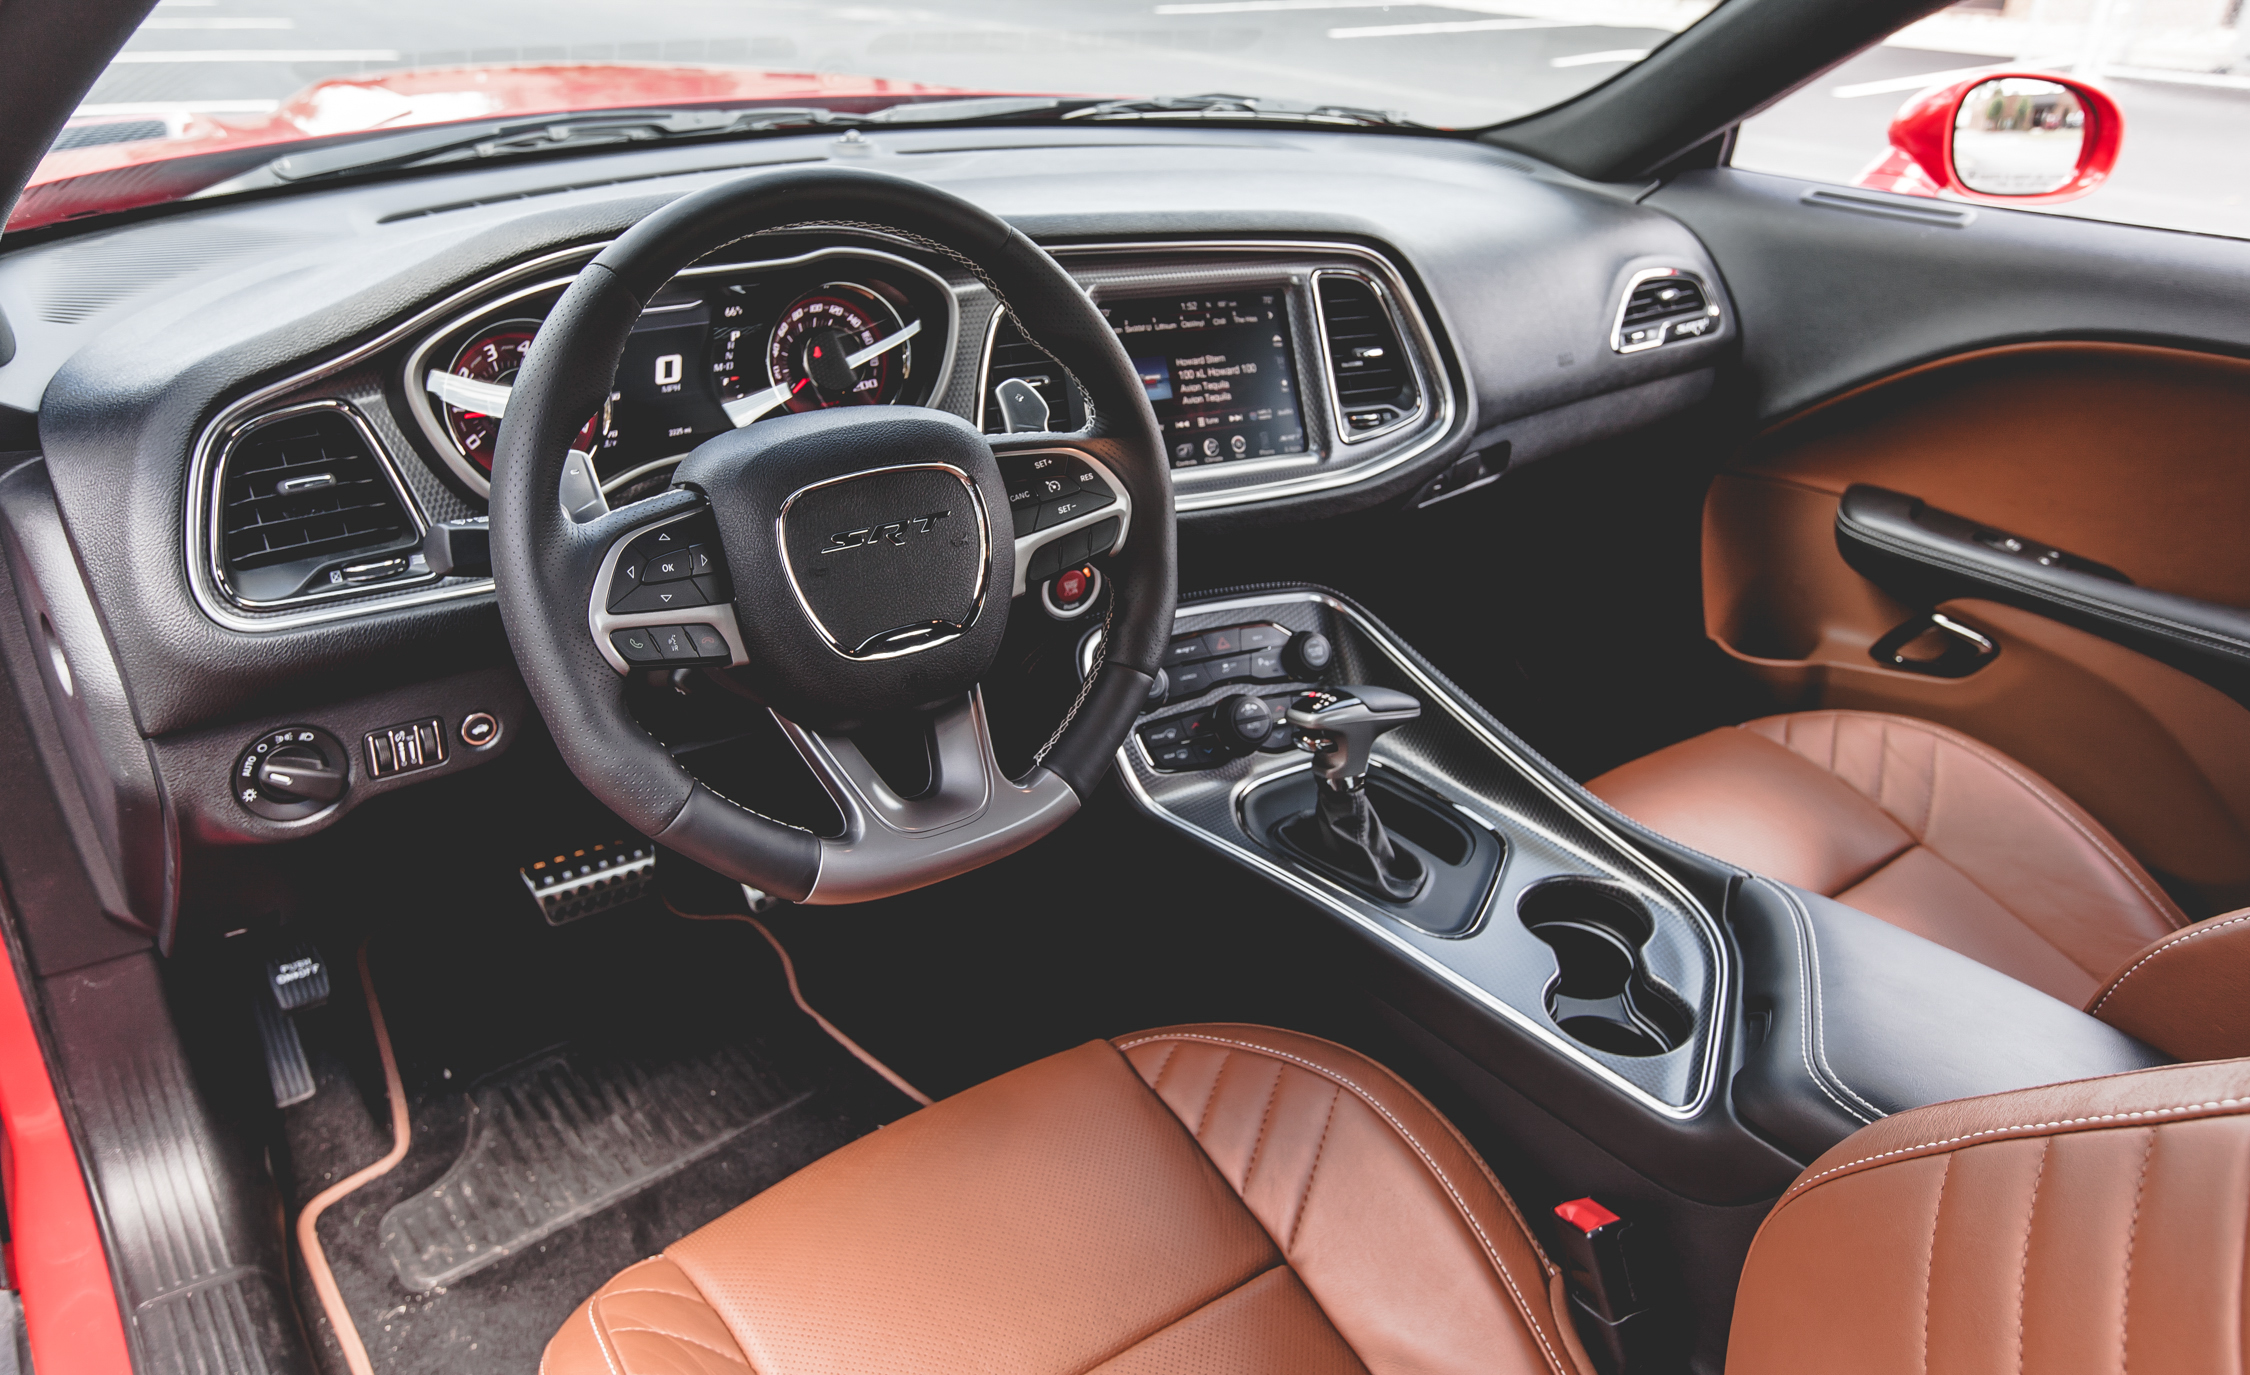 2015 Dodge Challenger SRT Hellcat Interior (Photo 18 of 22)